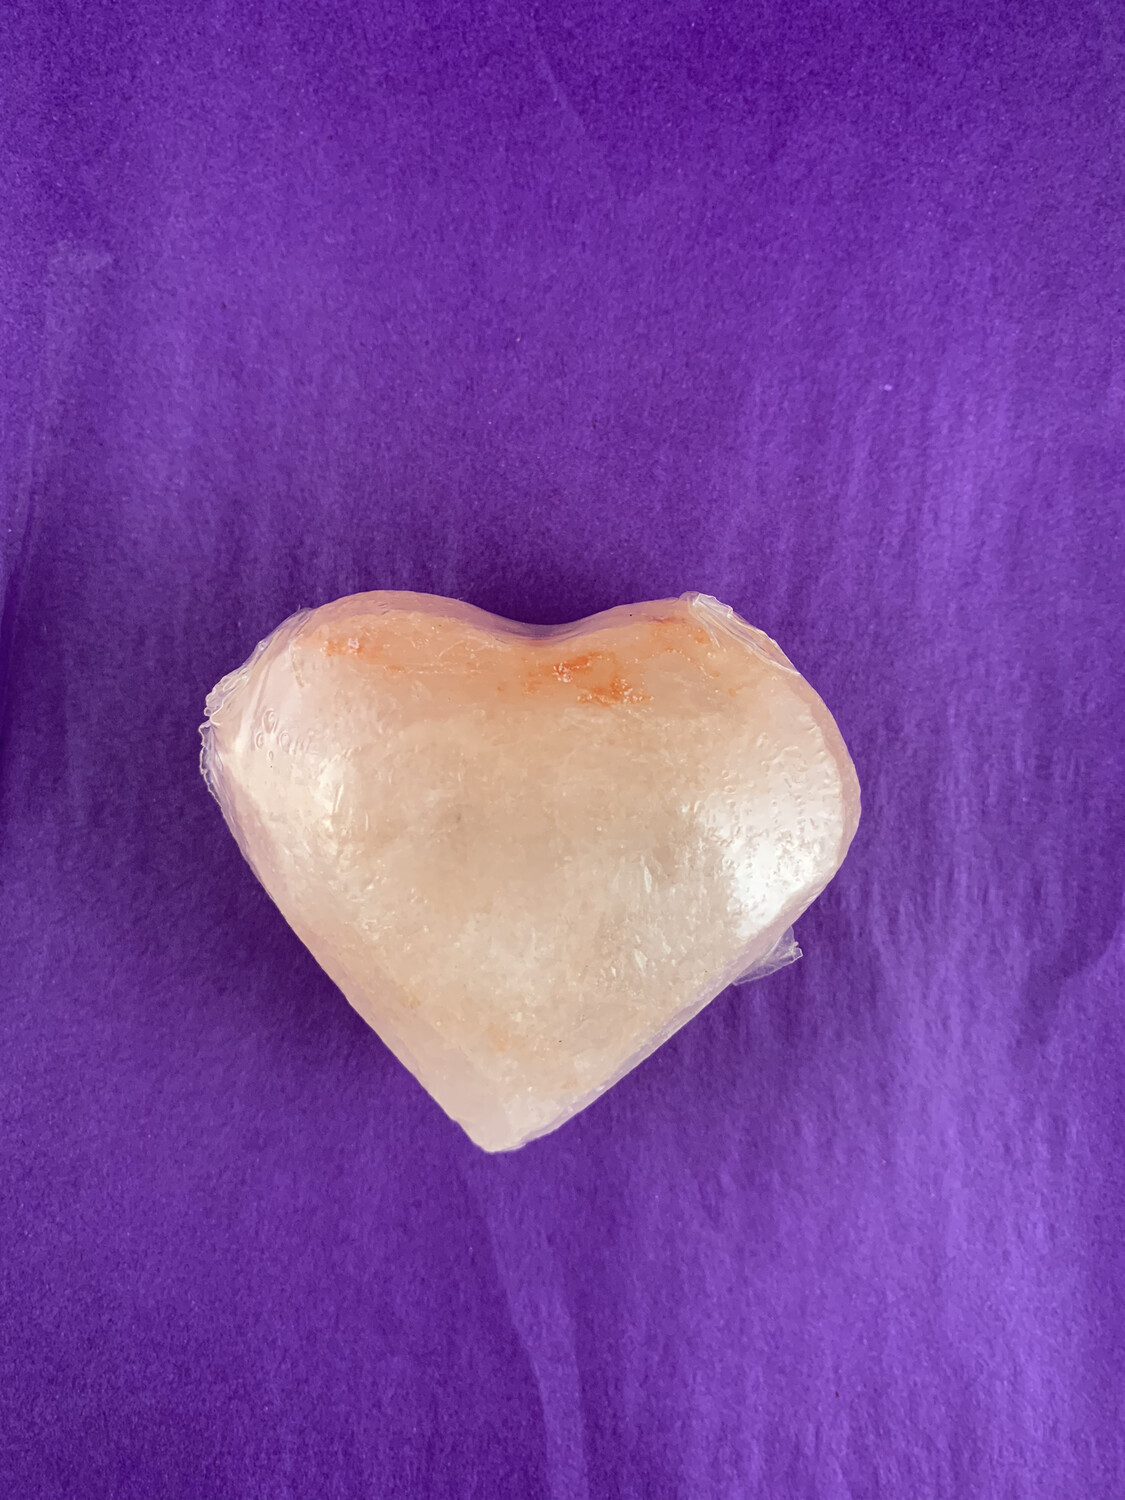 Himalayan Salt Massage Bar/soap/deodorant - Heart shape